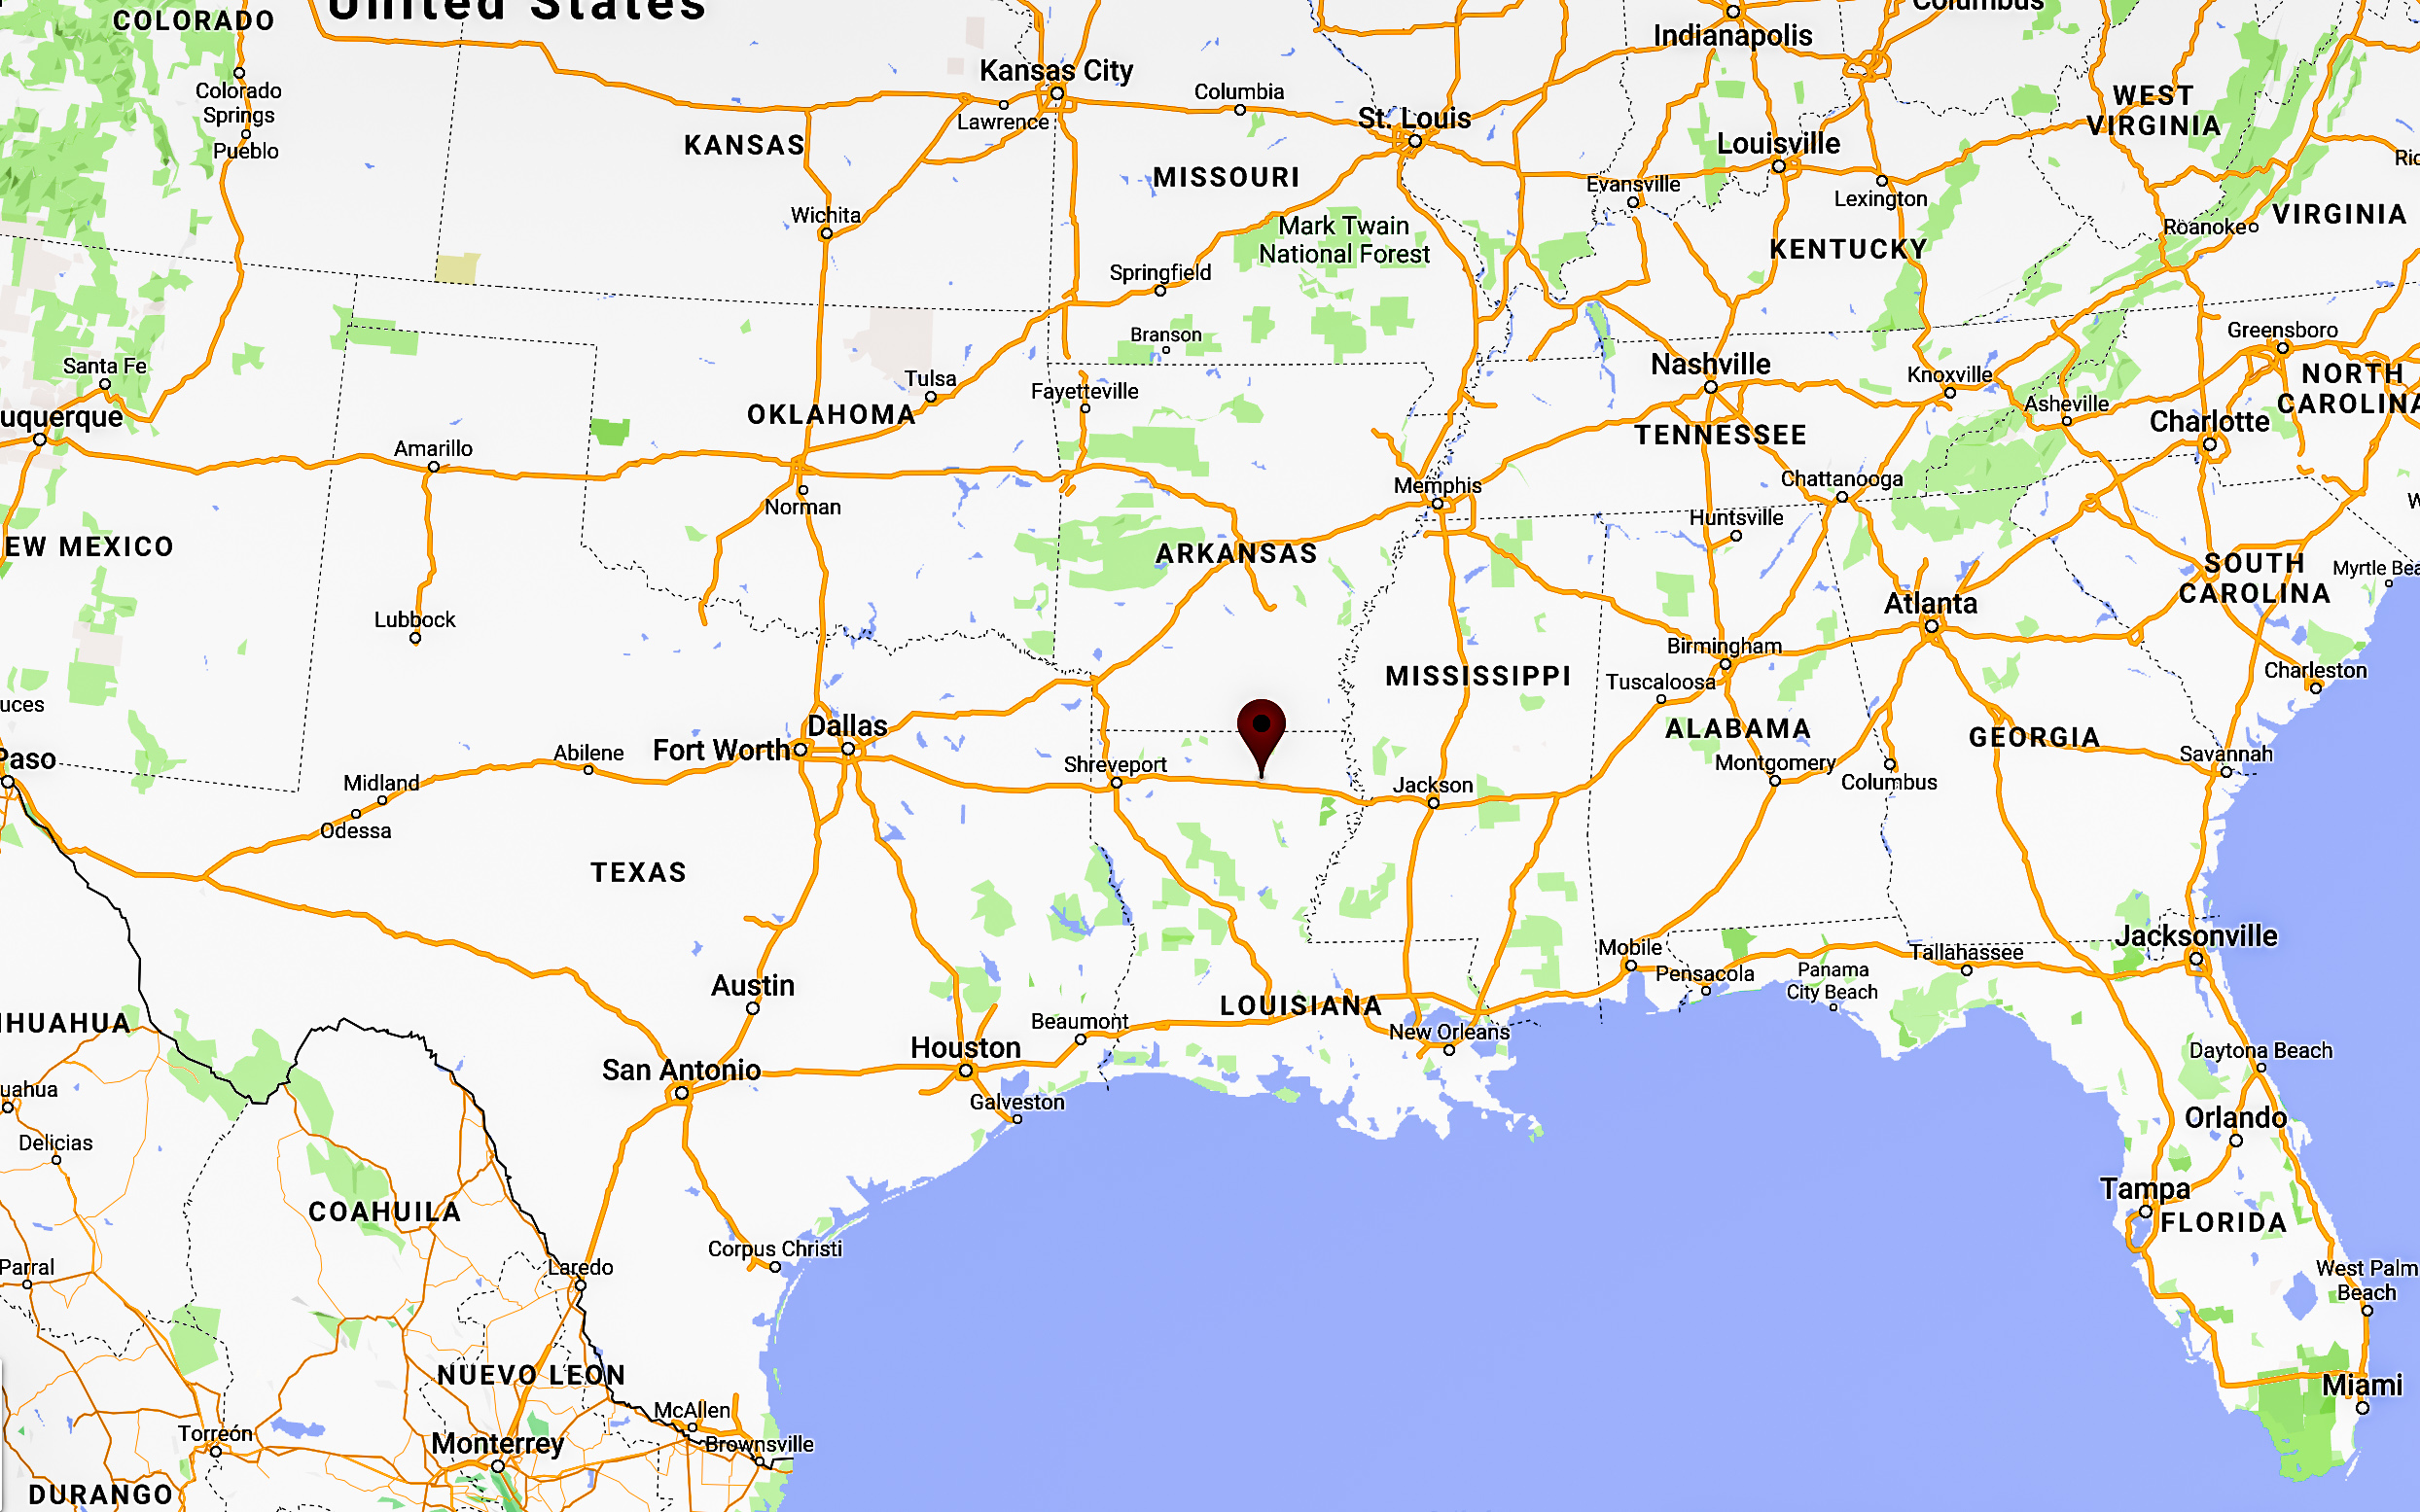 We're that small dot in the northern part of Louisiana.